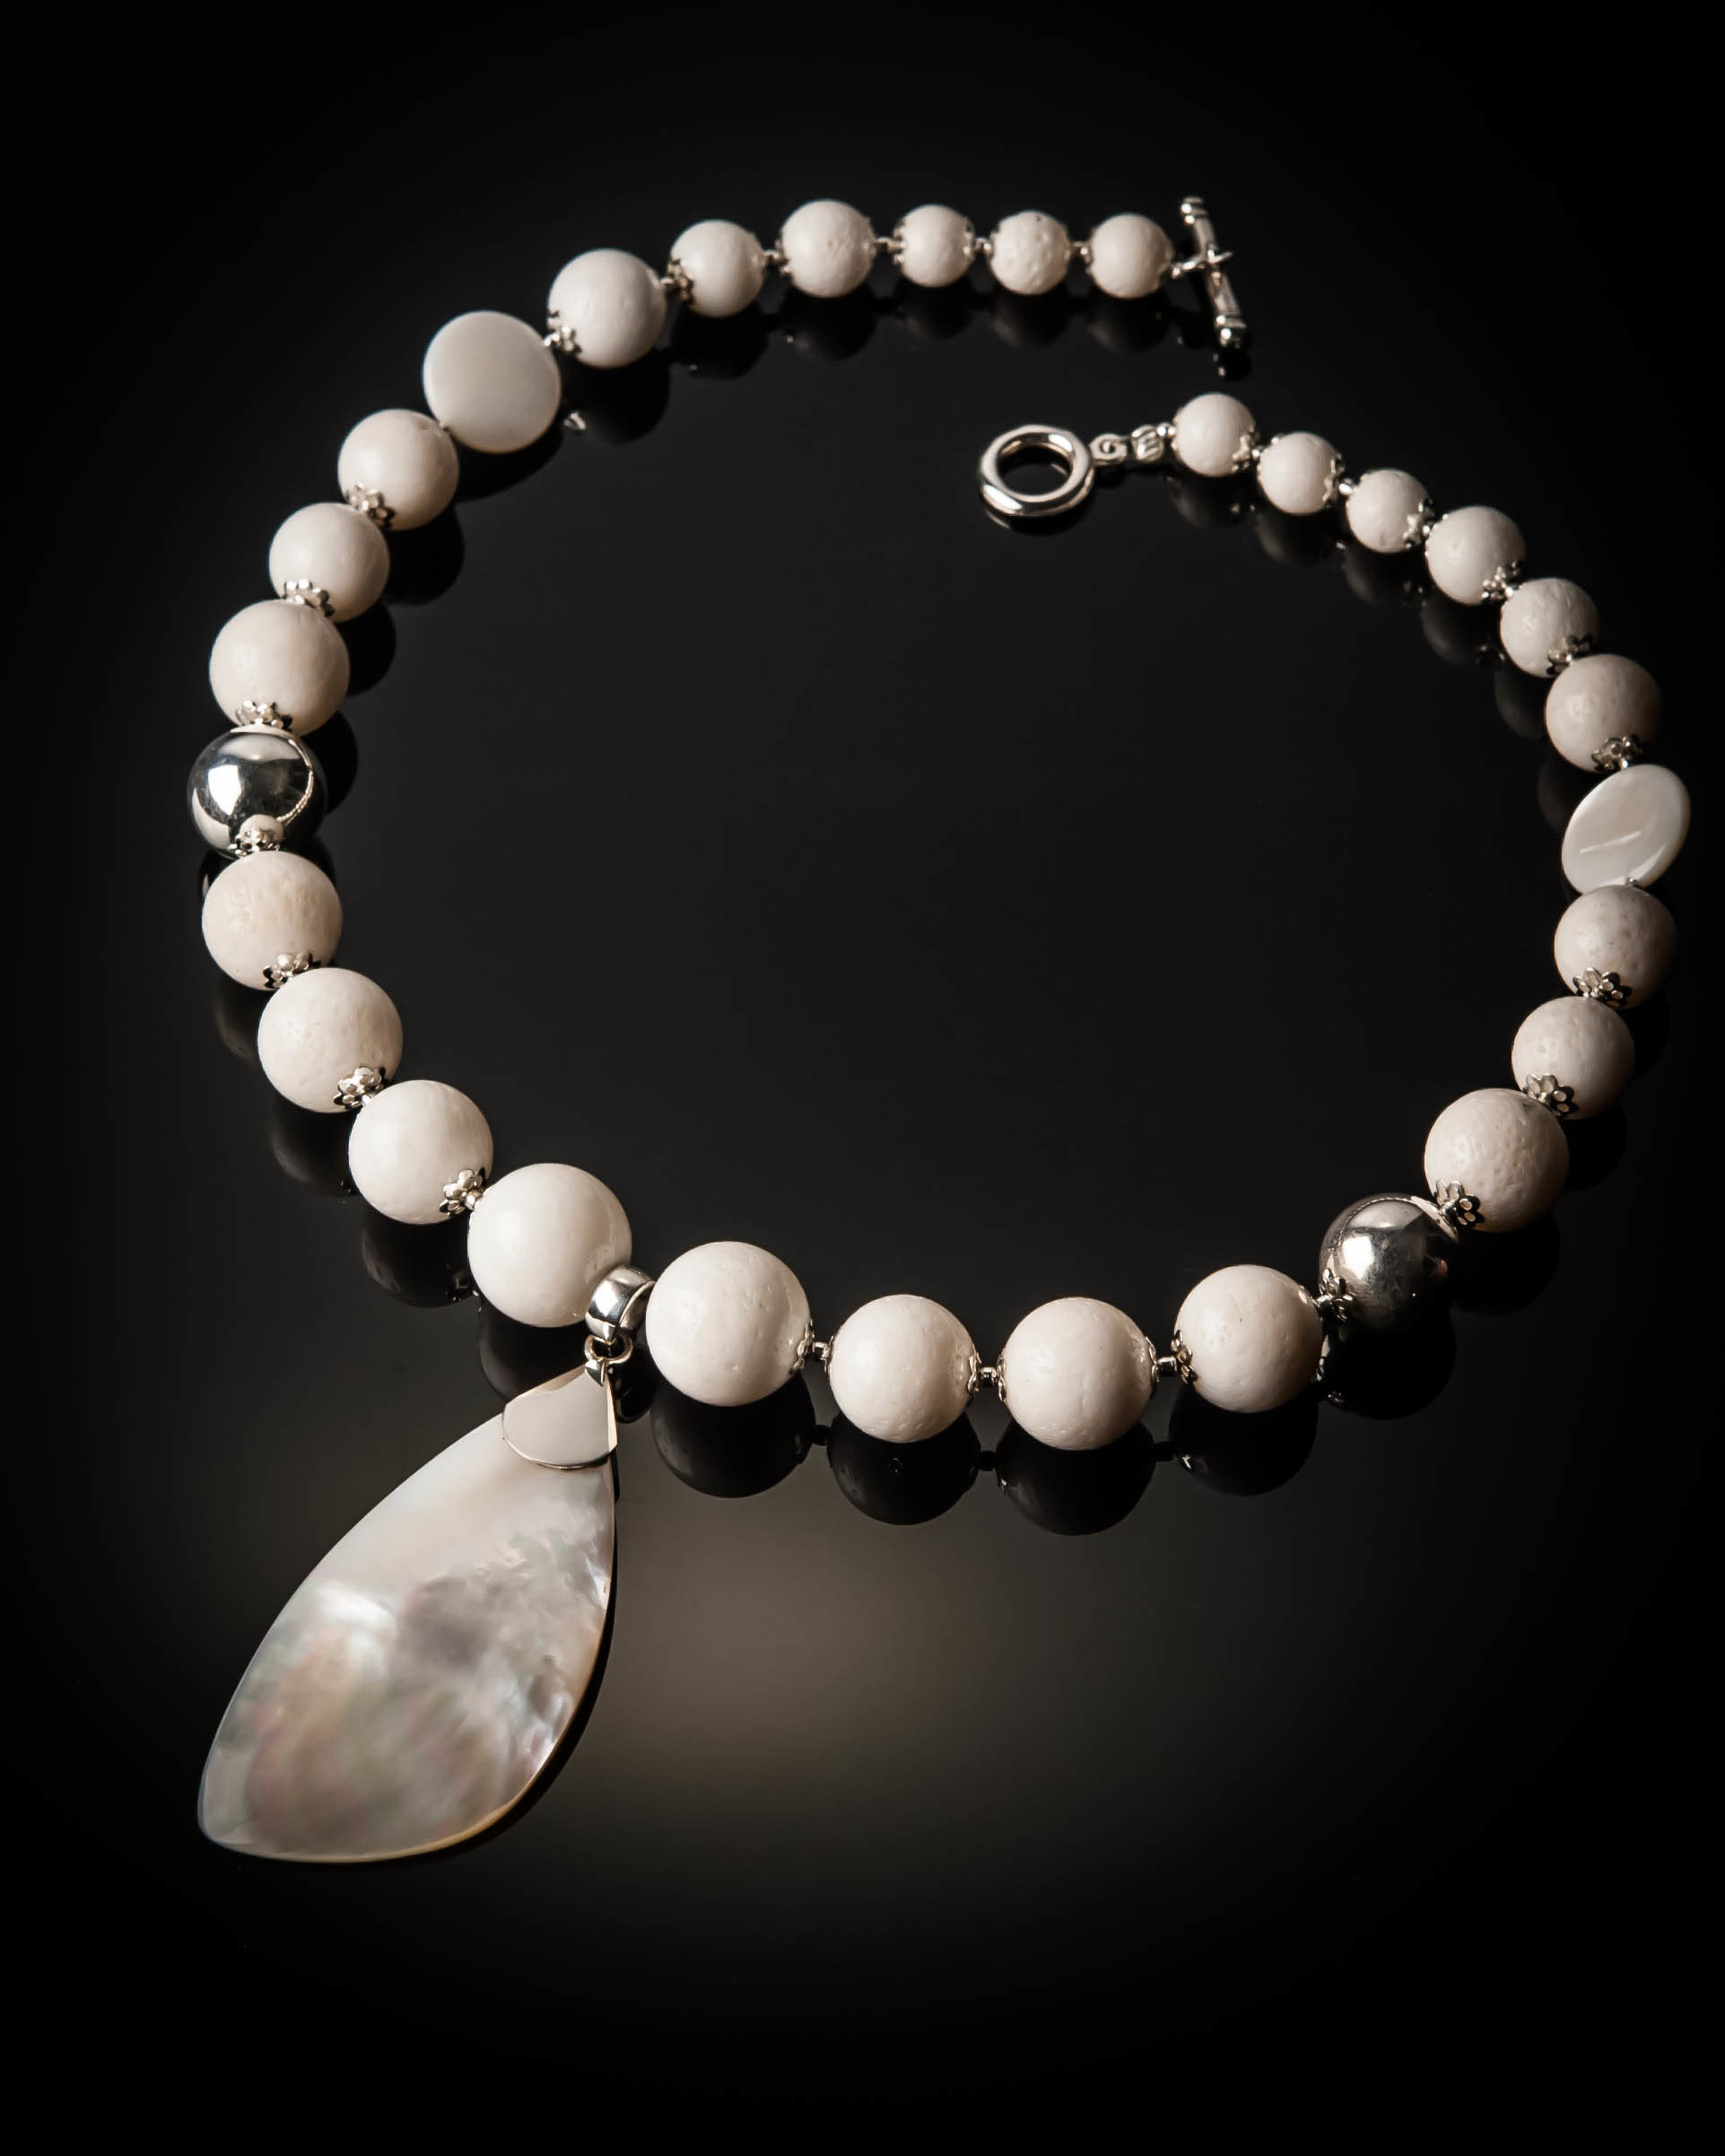 White Coral with Mother of Pearl Necklace 932 white